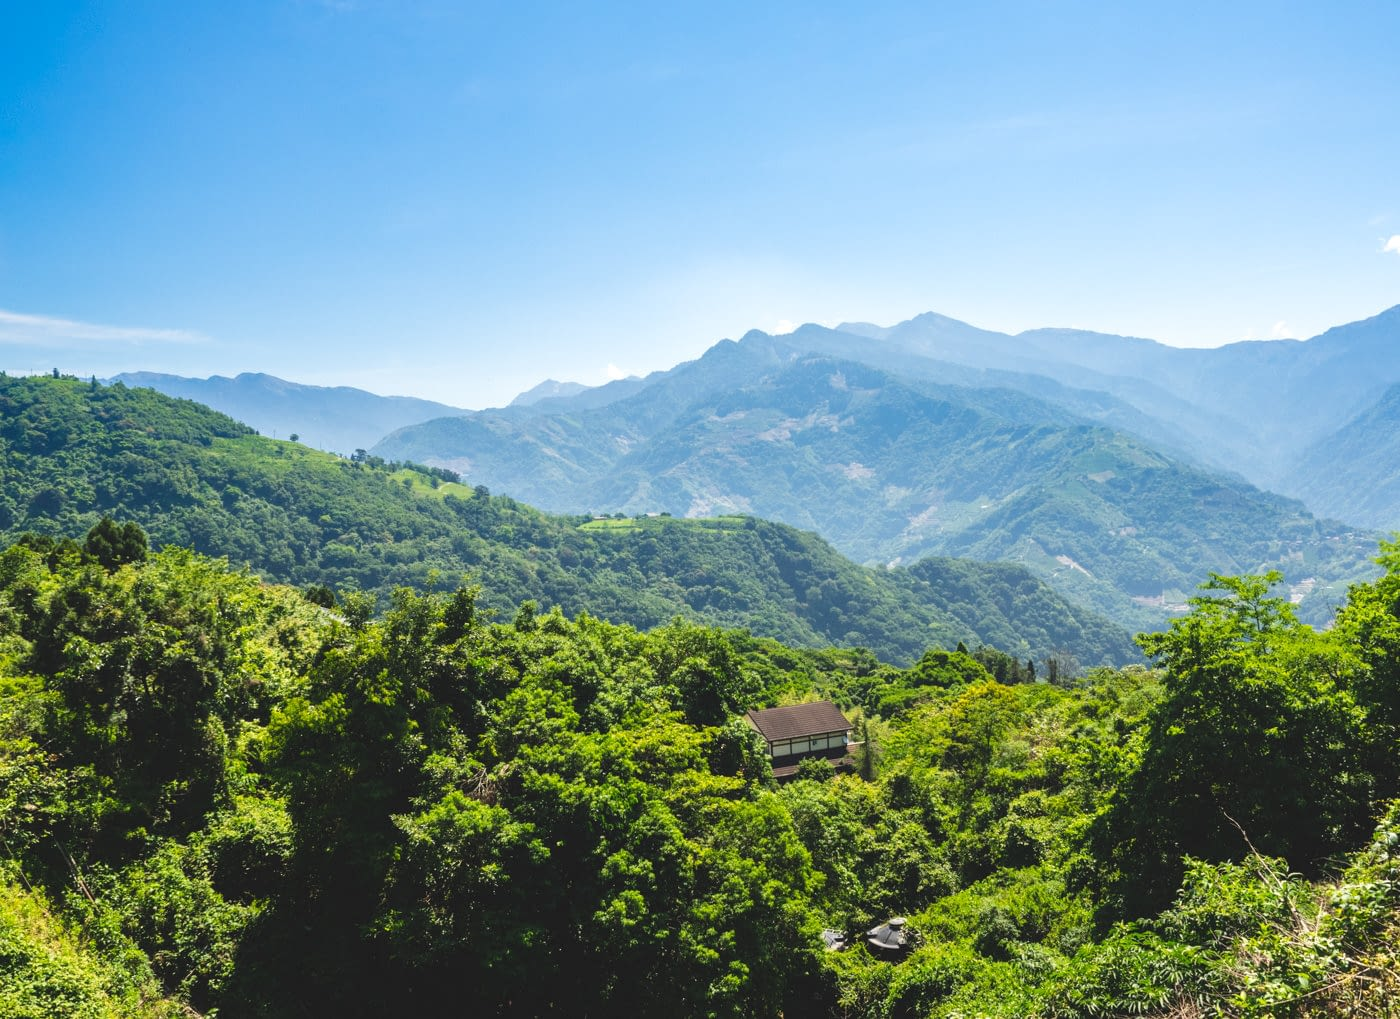 Taiwan - Qingjing - Overlooking a lonely house